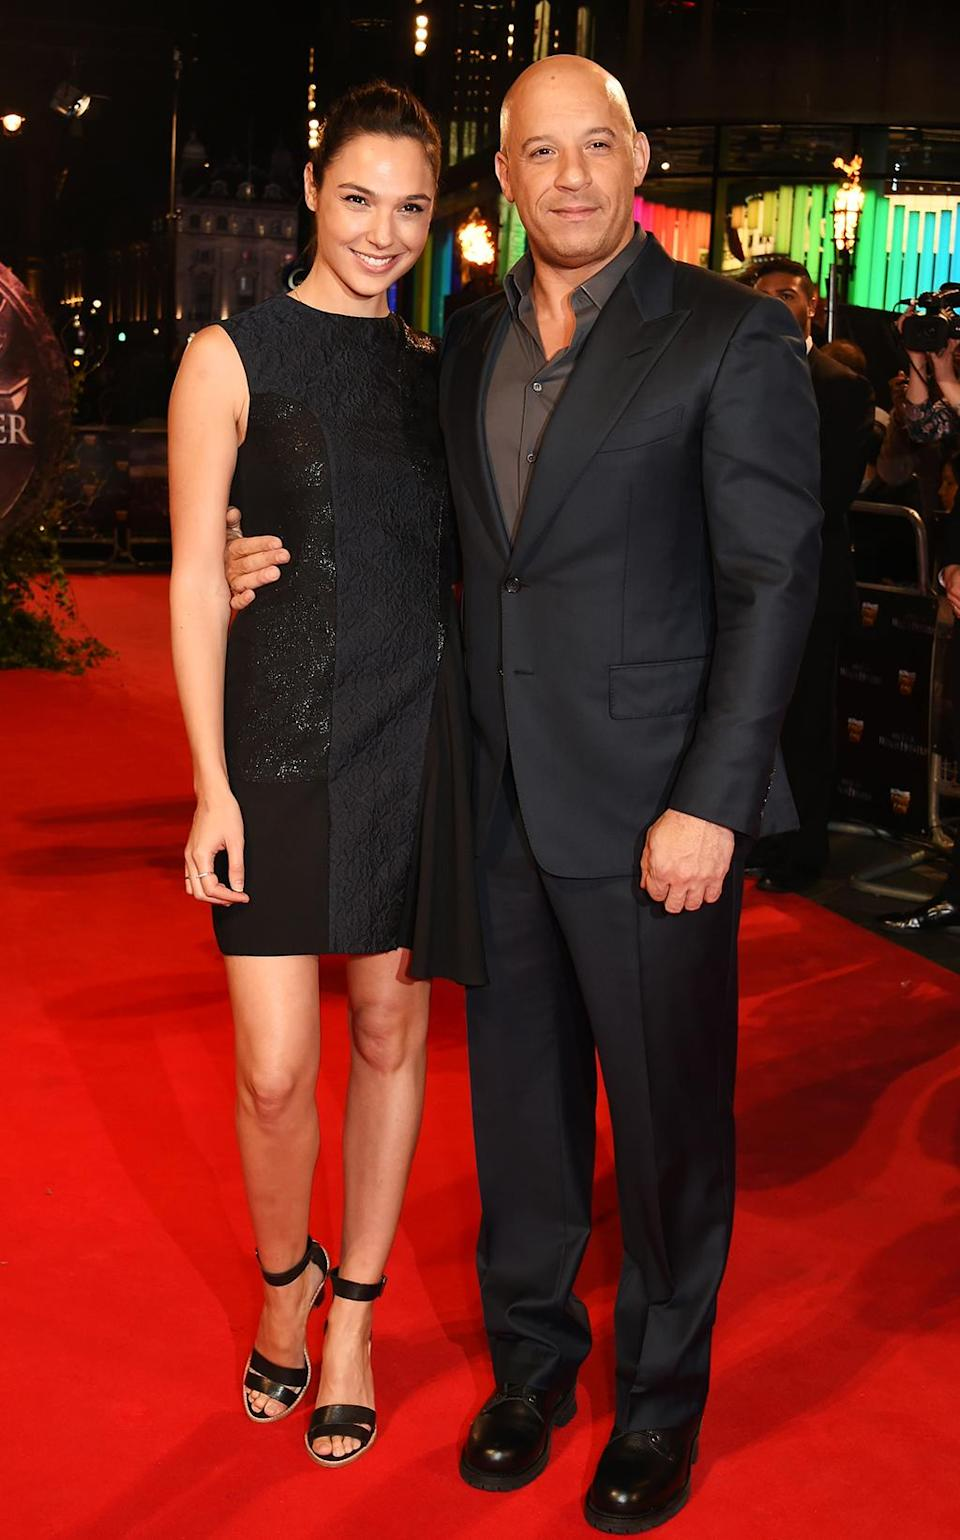 <p>Gadot supported her Fast & Furious co-star Vin Diesel at the London premiere of his new film on Oct. 19, 2015. (Photo: Dave Benett/WireImage) </p>